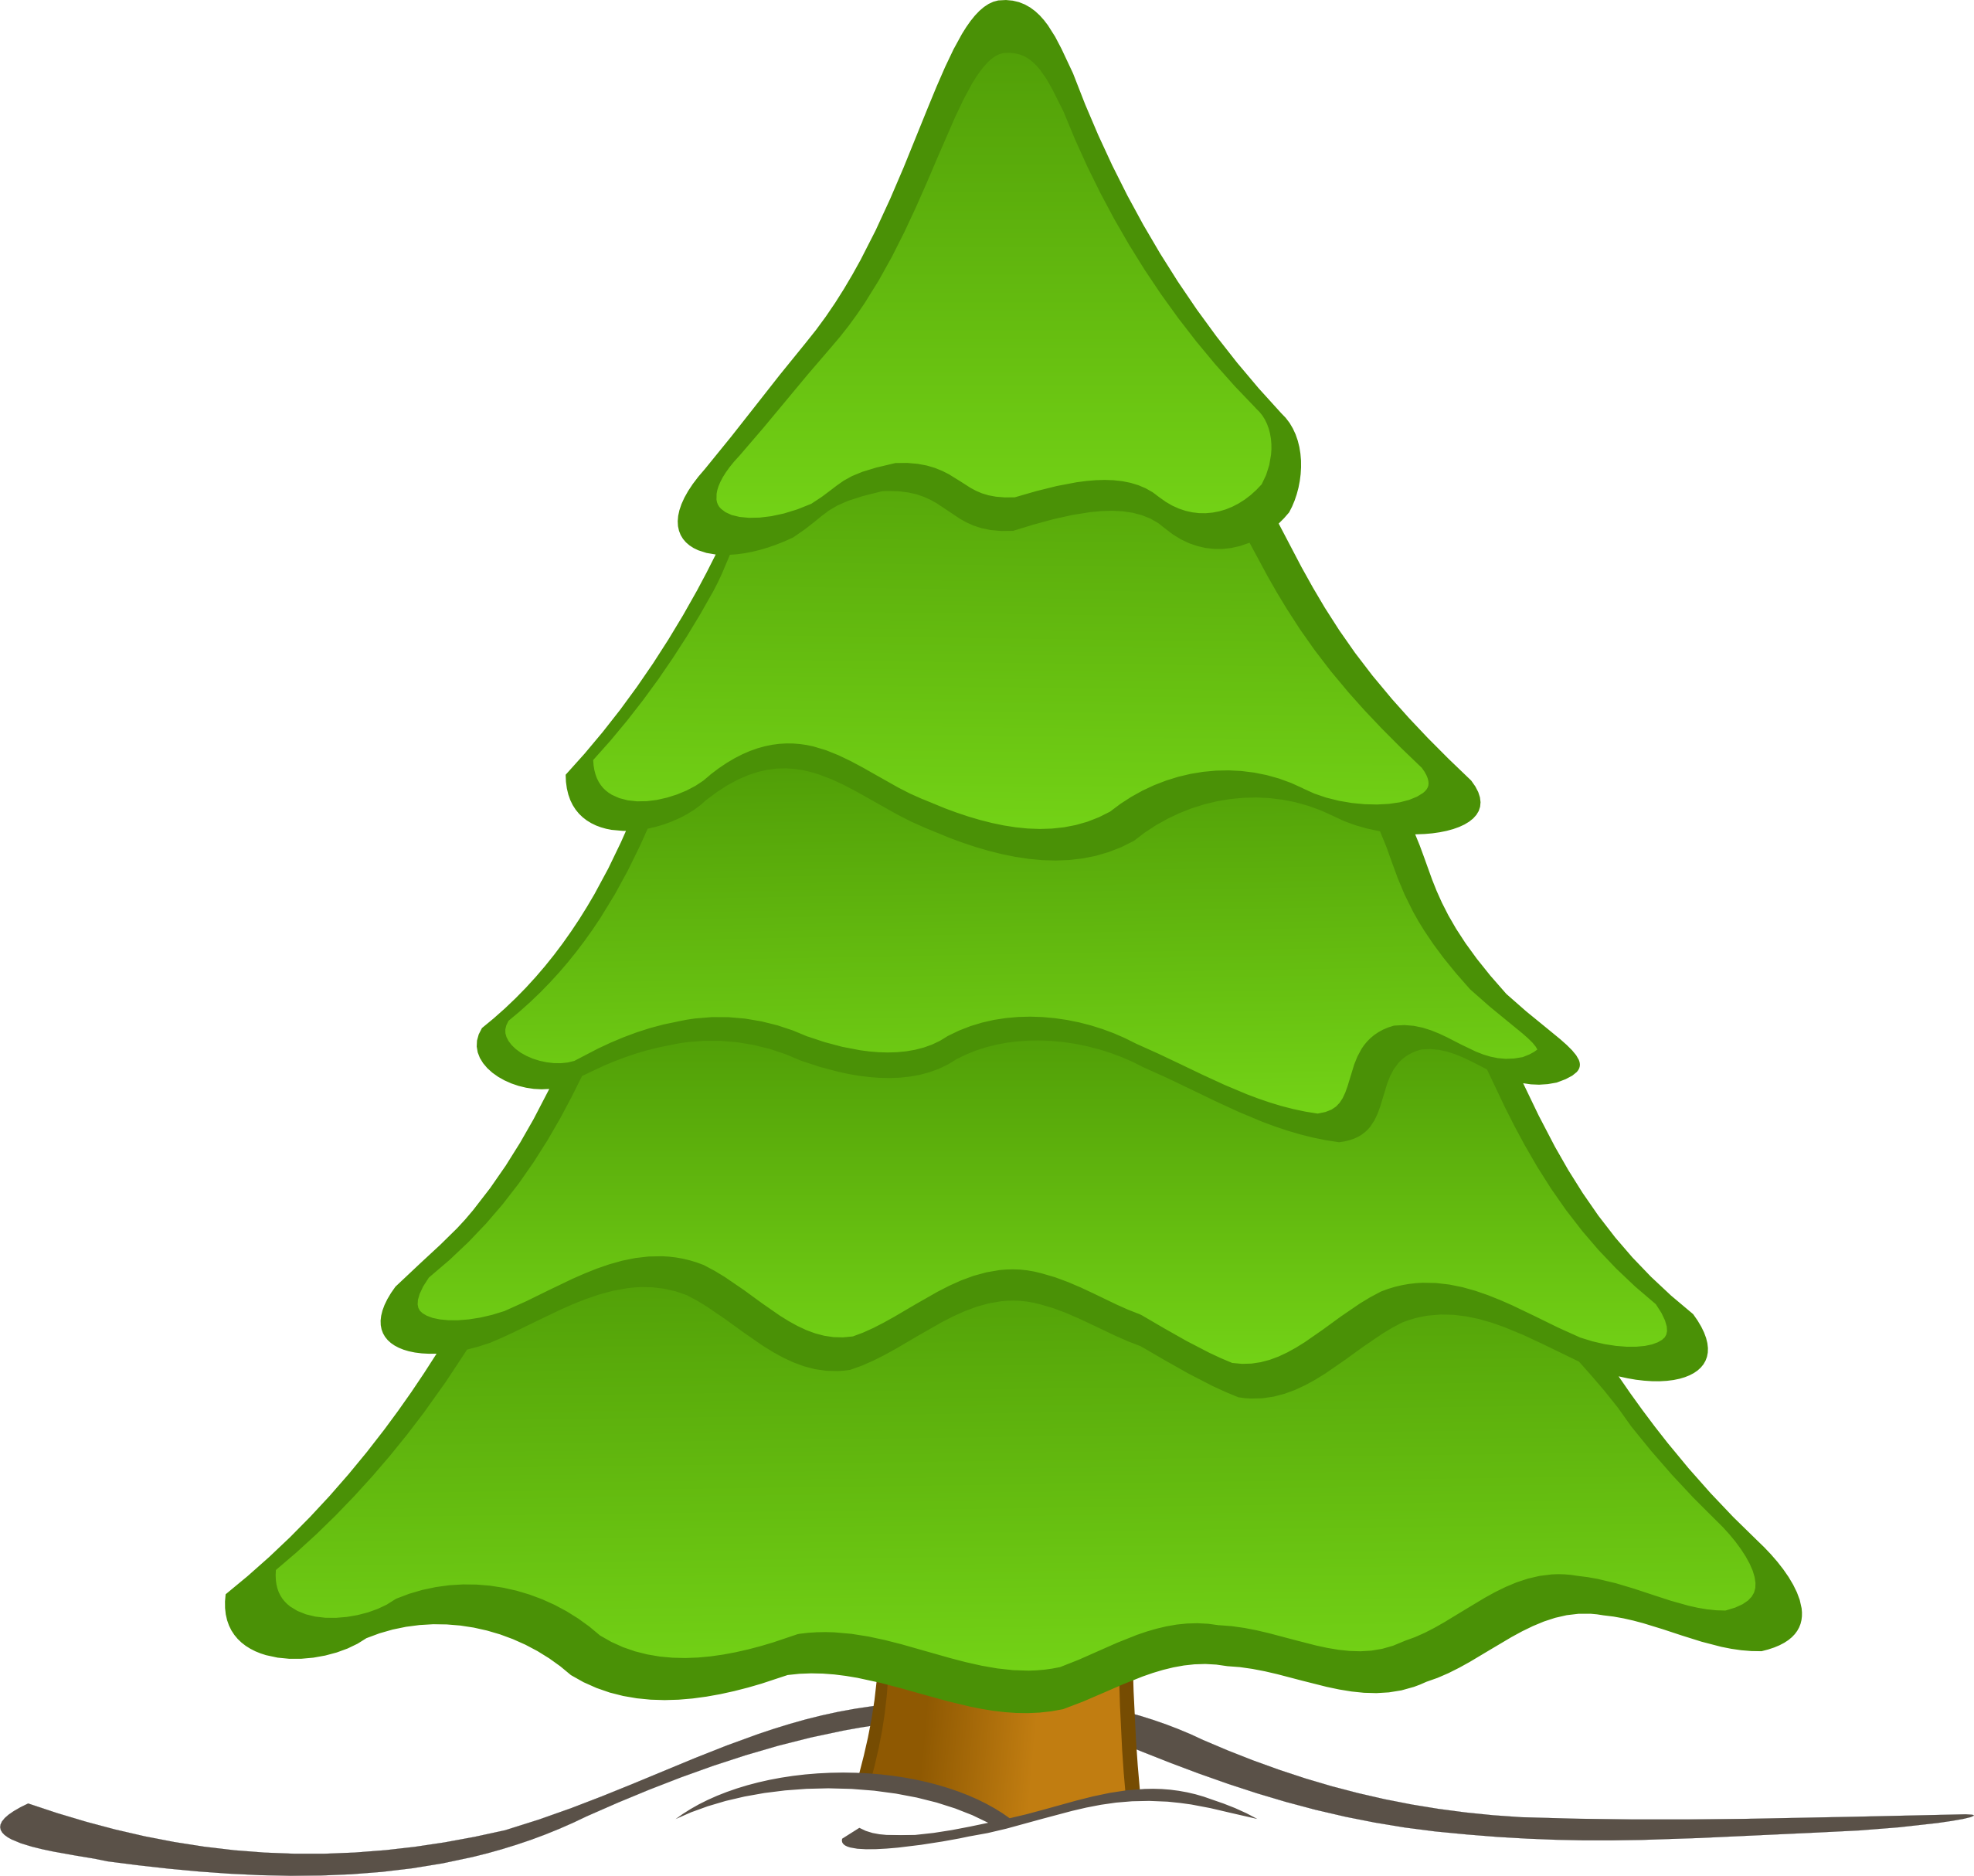 Evergreen Tree Clipart | Free download best Evergreen Tree Clipart ... image royalty free download